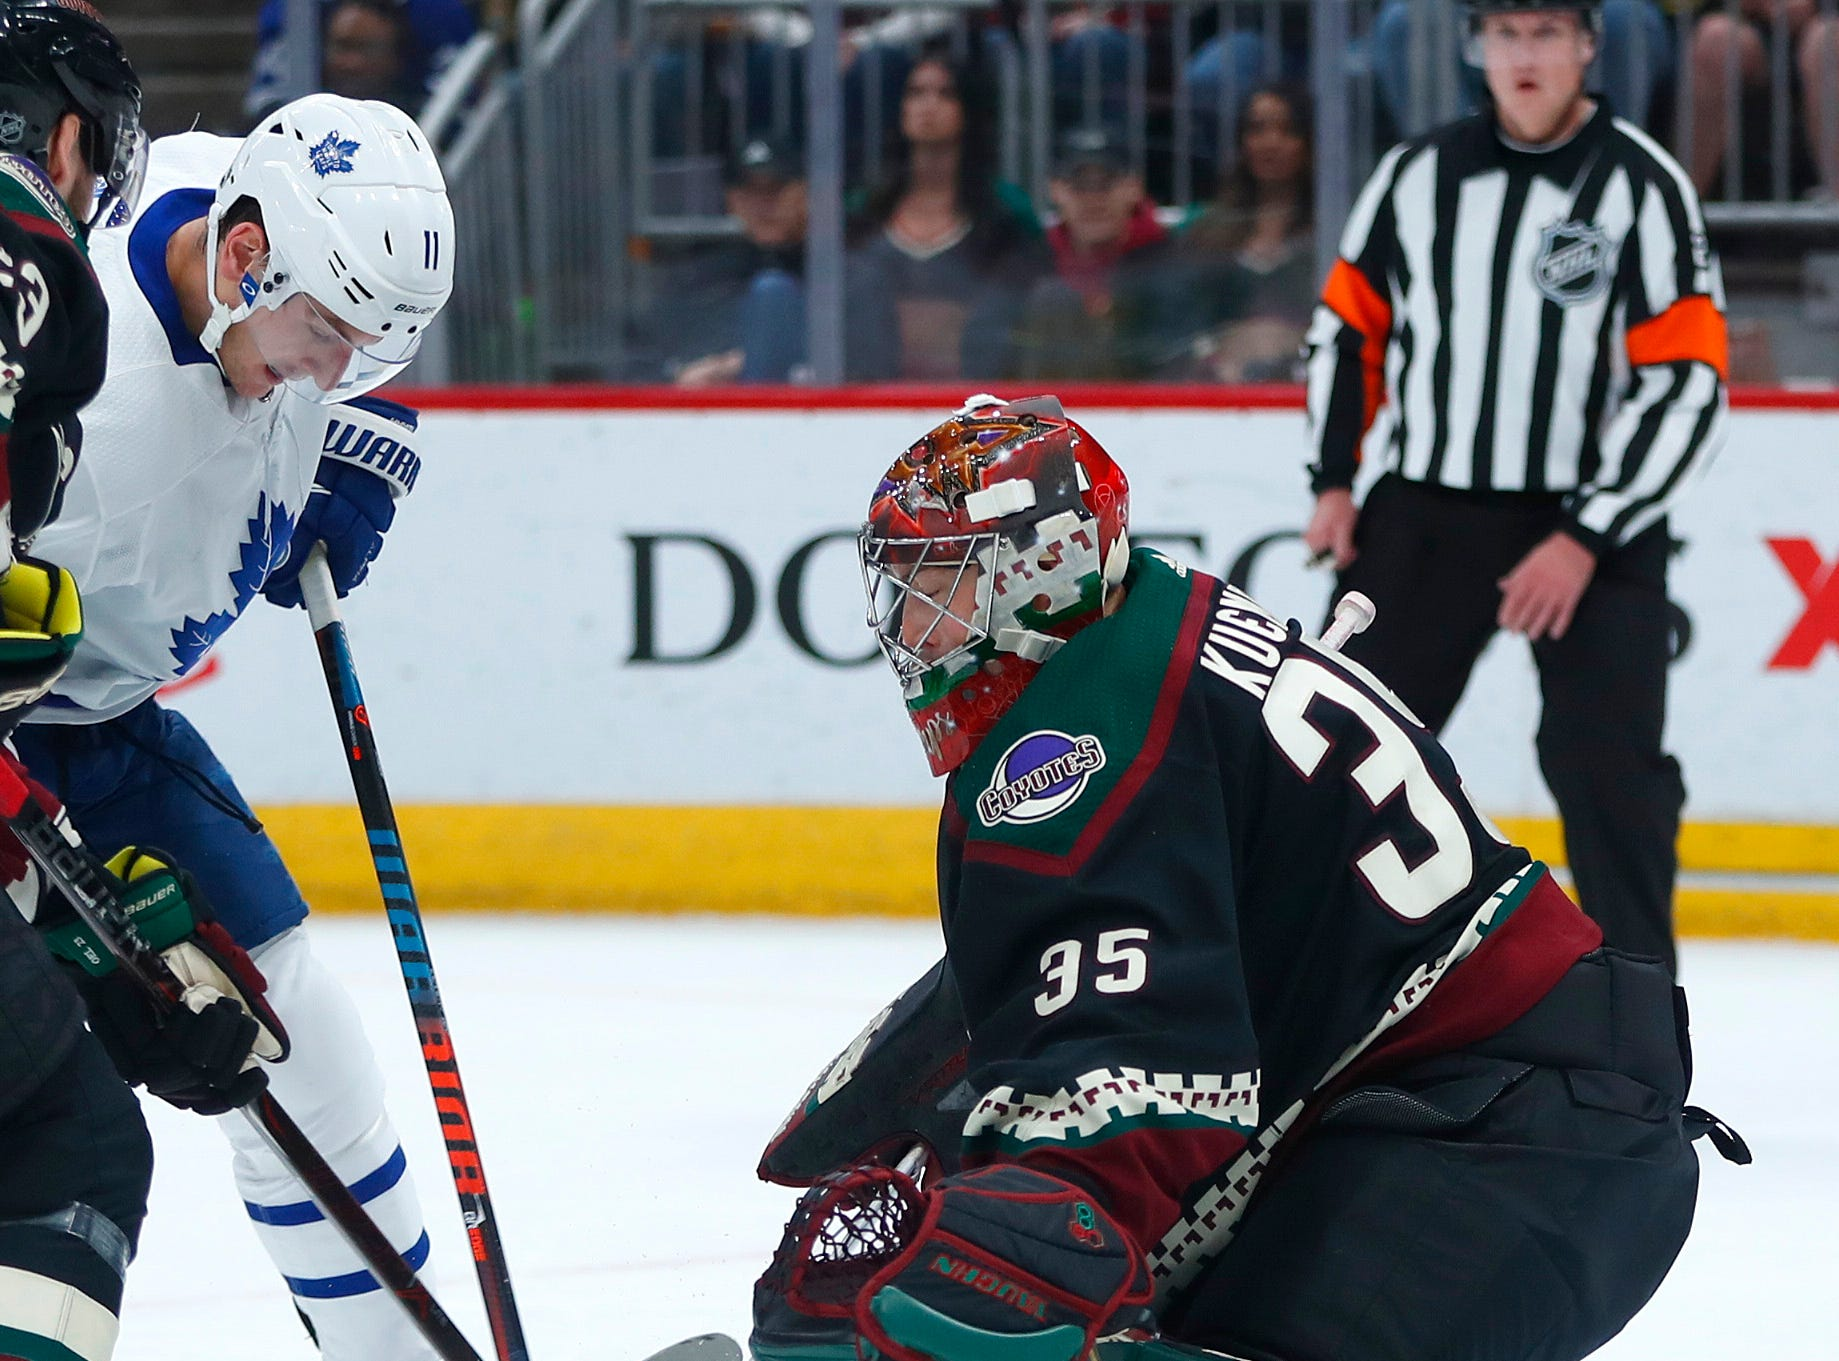 Maple Leafs' John Tavares shoots against Coyotes' goalie Darcy Kuemper (35) during the first period at Gila River Arena in Glendale, Ariz. on February 16, 2019.